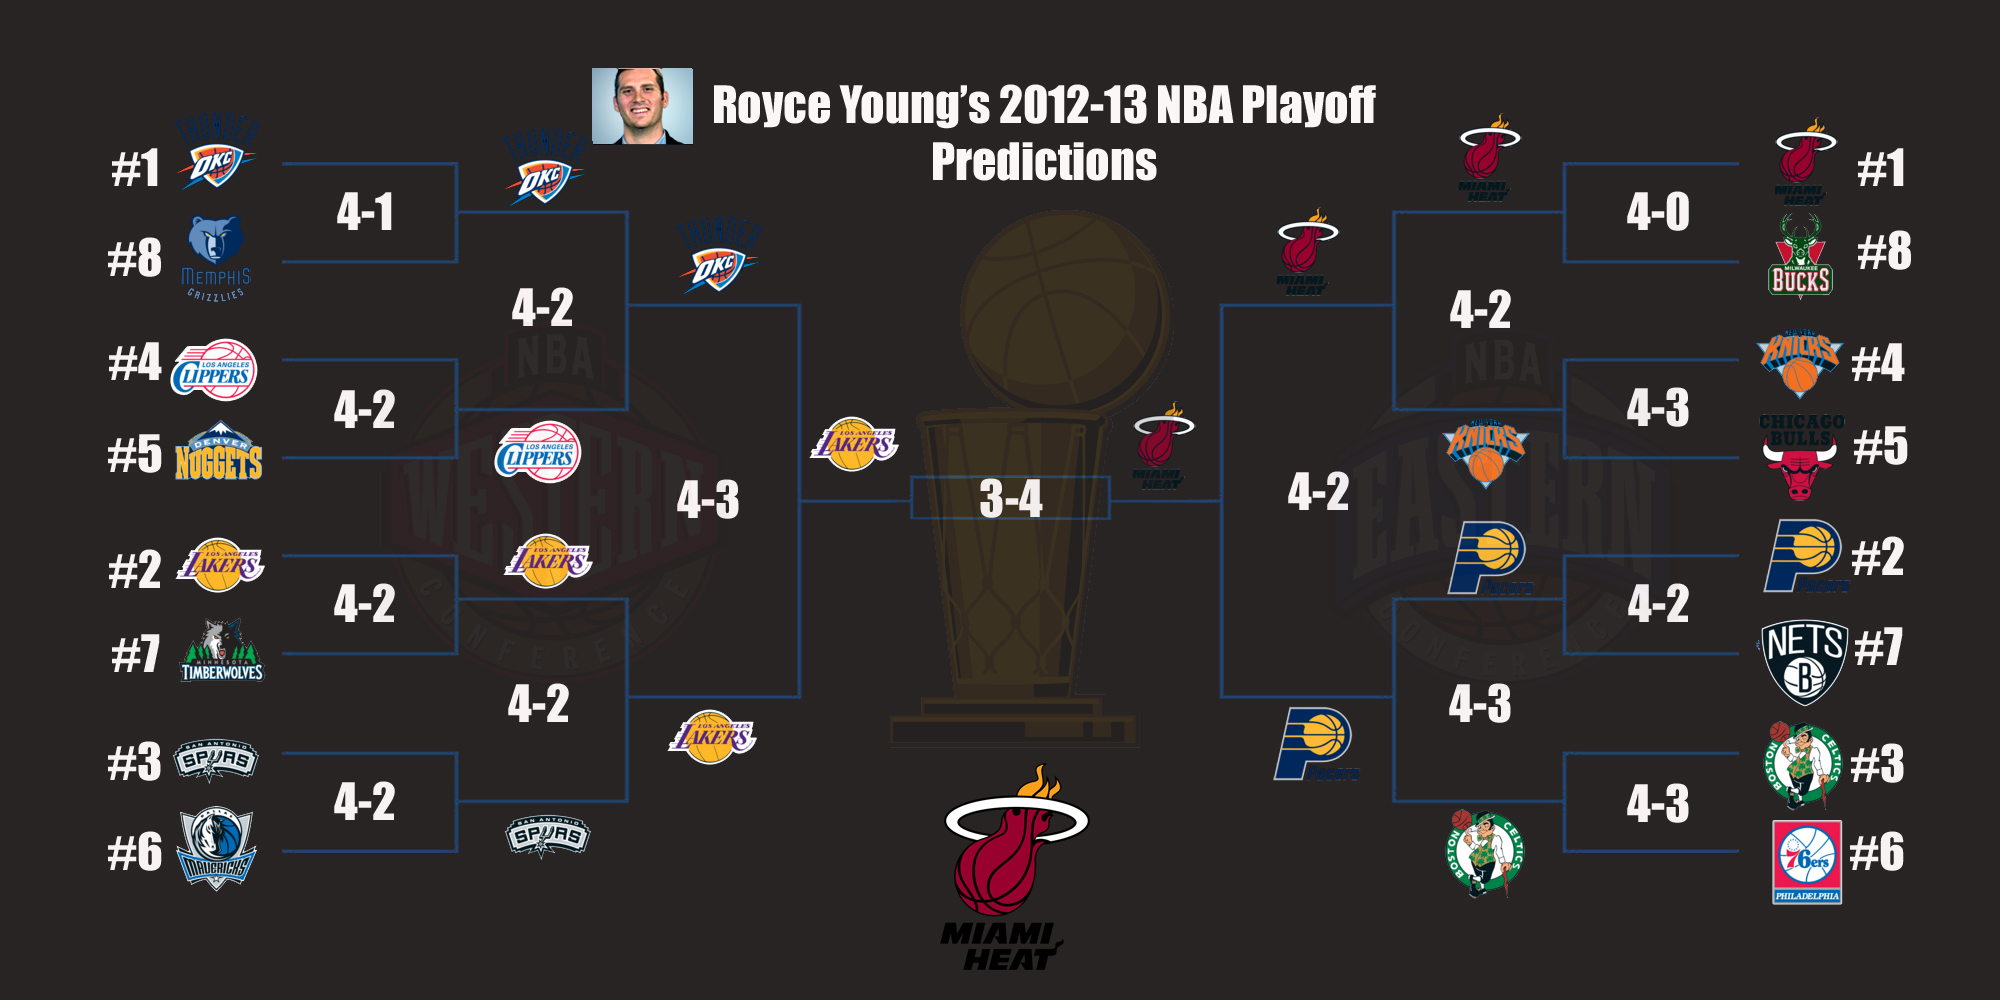 CBSSports.com 2012-13 NBA Playoff Predictions - CBSSports.com